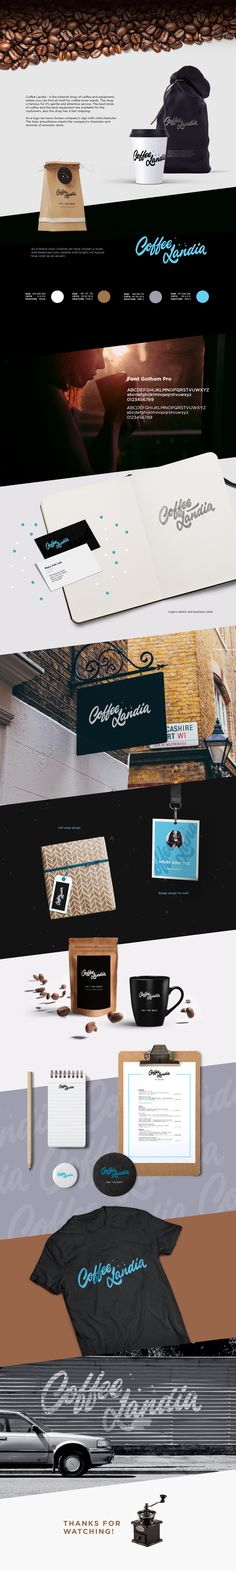 """Check out this @Behance project: """"CoffeeLandia"""" https://www.behance.net/gallery/47201193/CoffeeLandia"""